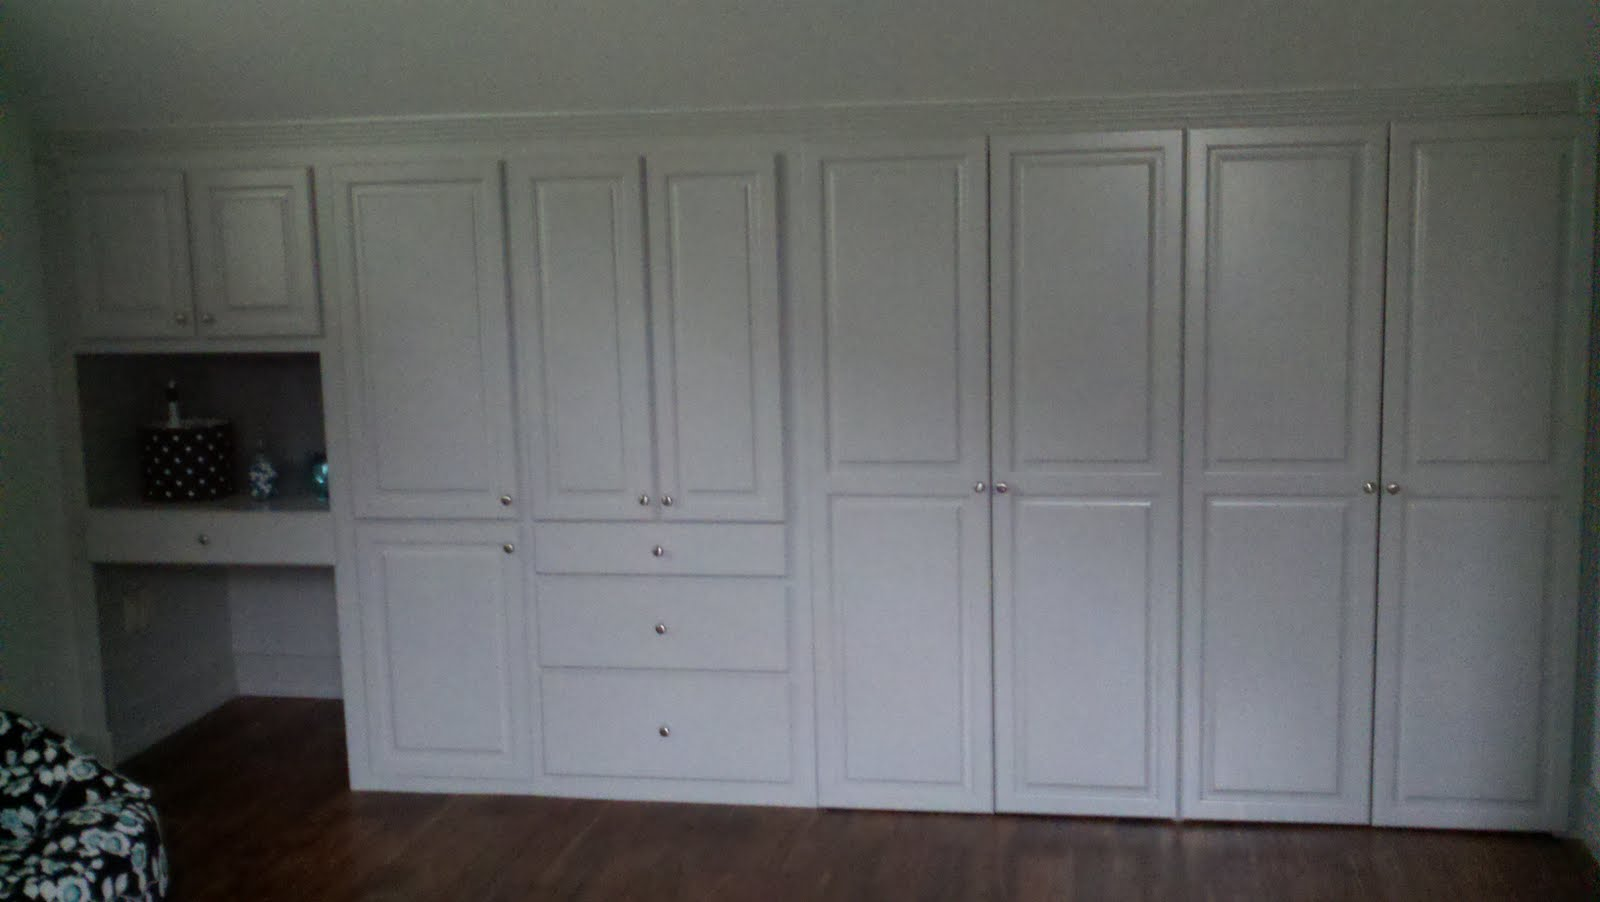 Homes renovations convert space into bedroom for Custom built cabinets